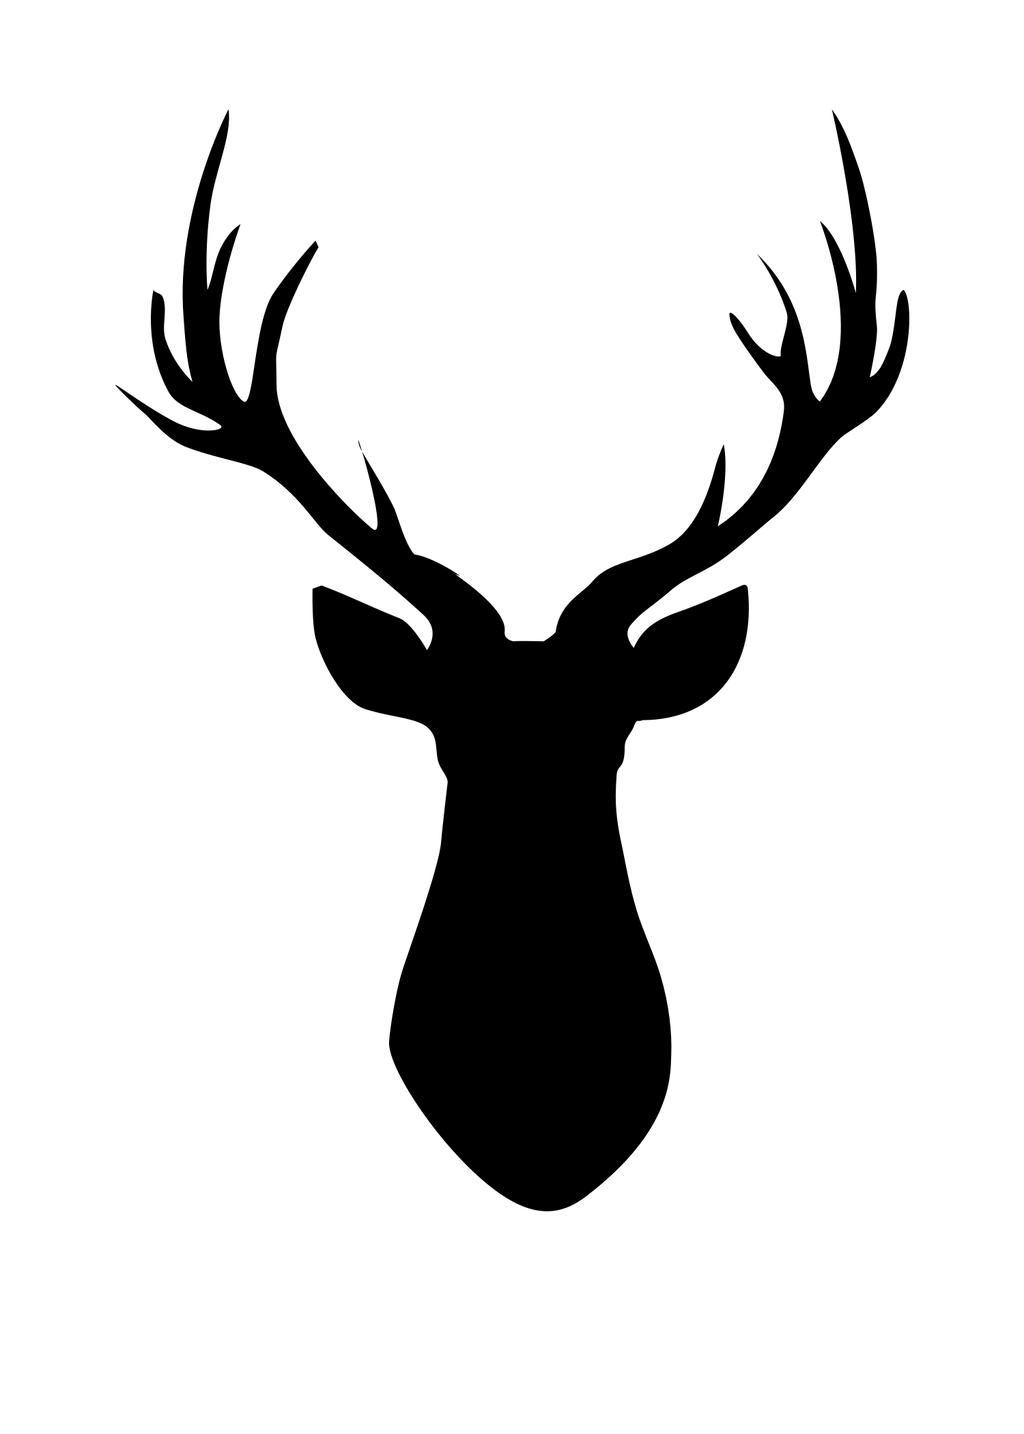 1024x1434 Deer Head Silhouette Graphics Deer Head Silhouette